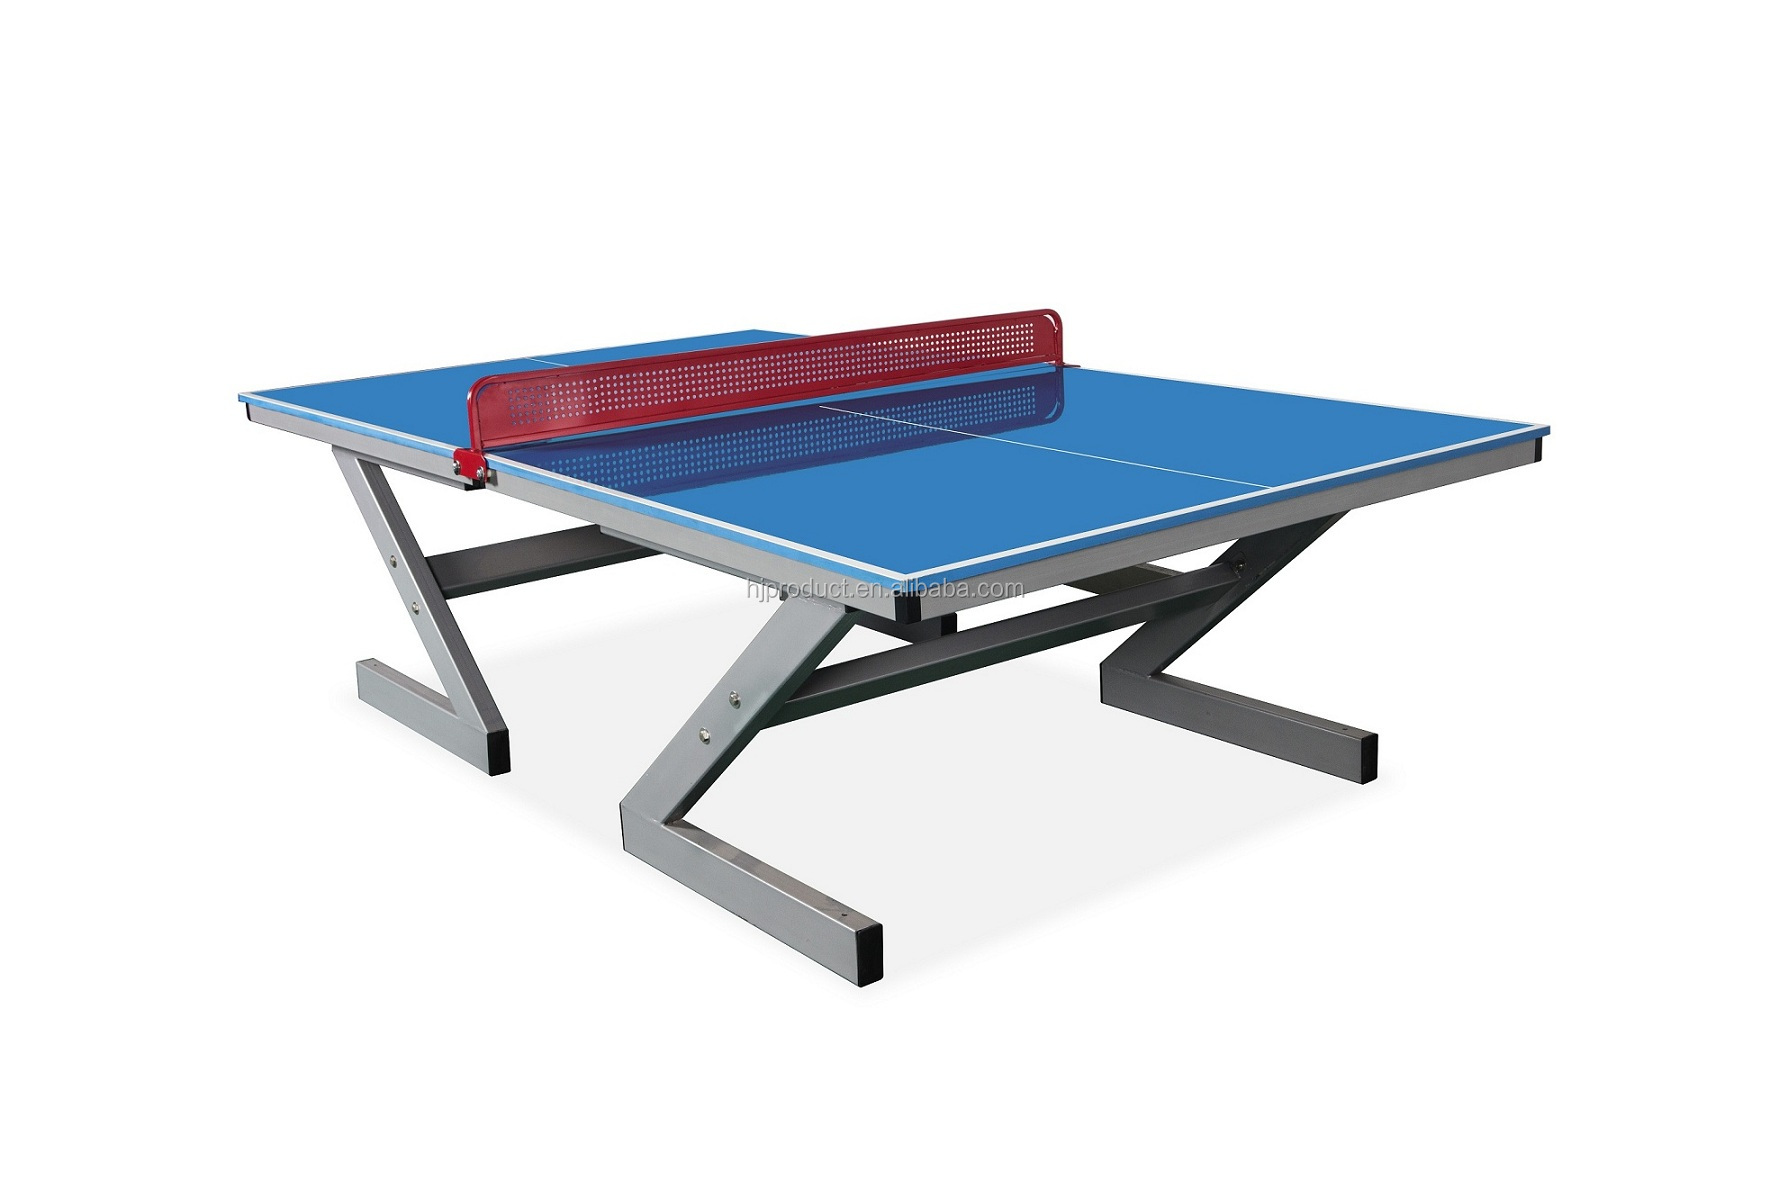 Magnificent Outdoor Weatherproof Table Tennis Table Fiber Glass Top Ping Pong Table Outdoor With Net Set Buy Table Tennis Outdoor Fiberglass Ping Pong Home Interior And Landscaping Dextoversignezvosmurscom